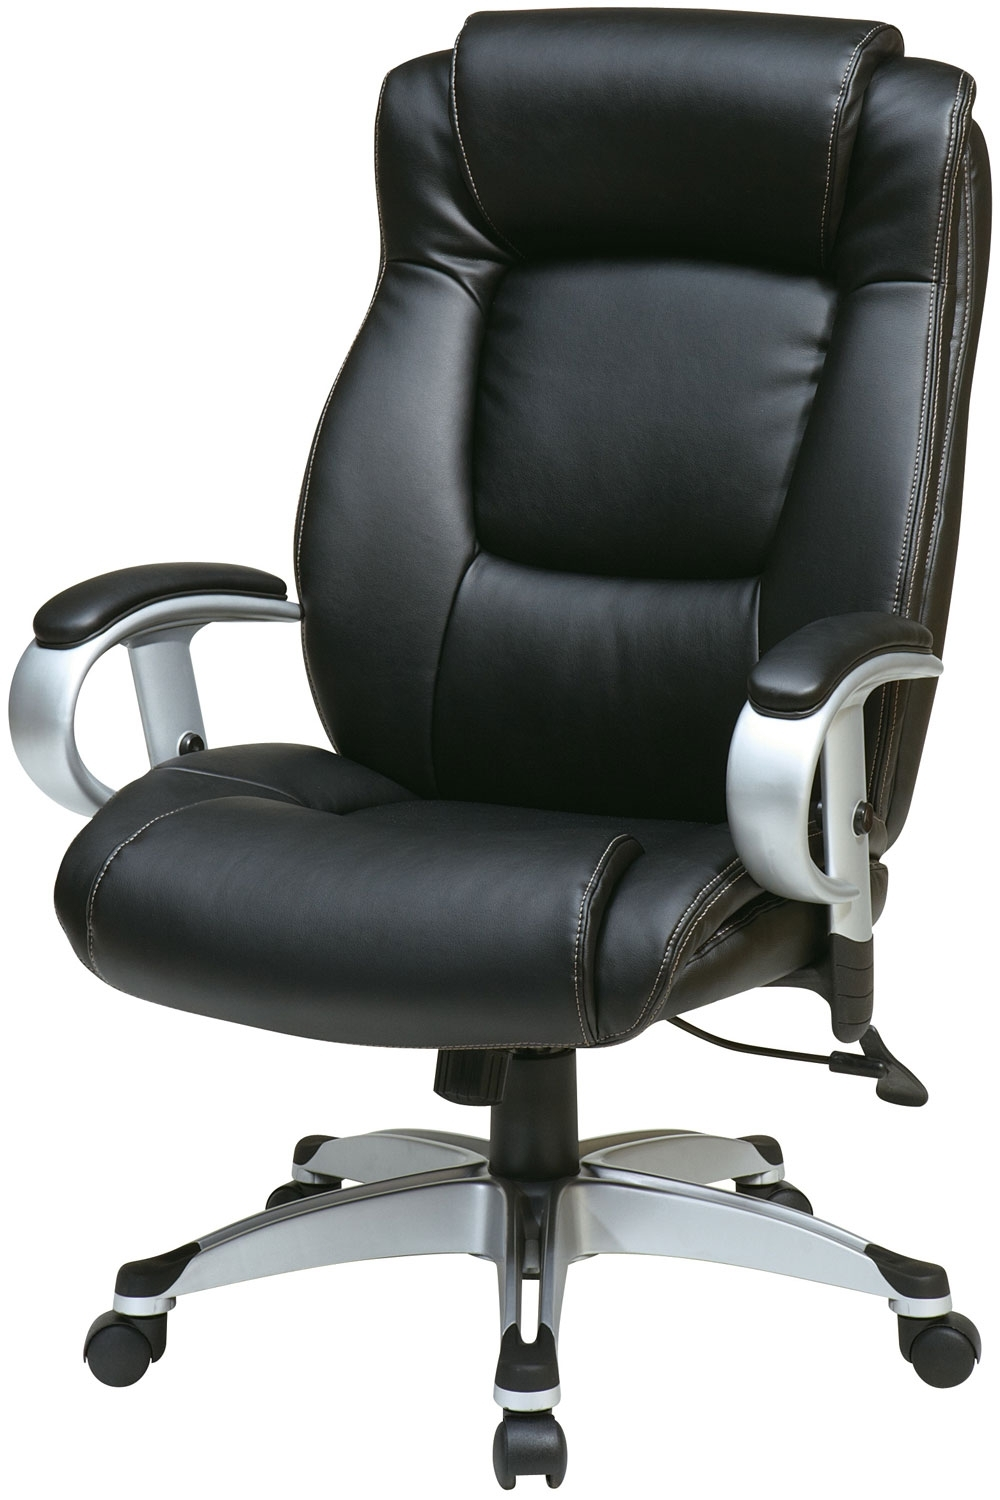 Most Recent Ech52666 Ec3 Office Star – Executive Black Eco Leather Chair With Intended For Executive Office Chairs Without Arms (Gallery 14 of 20)